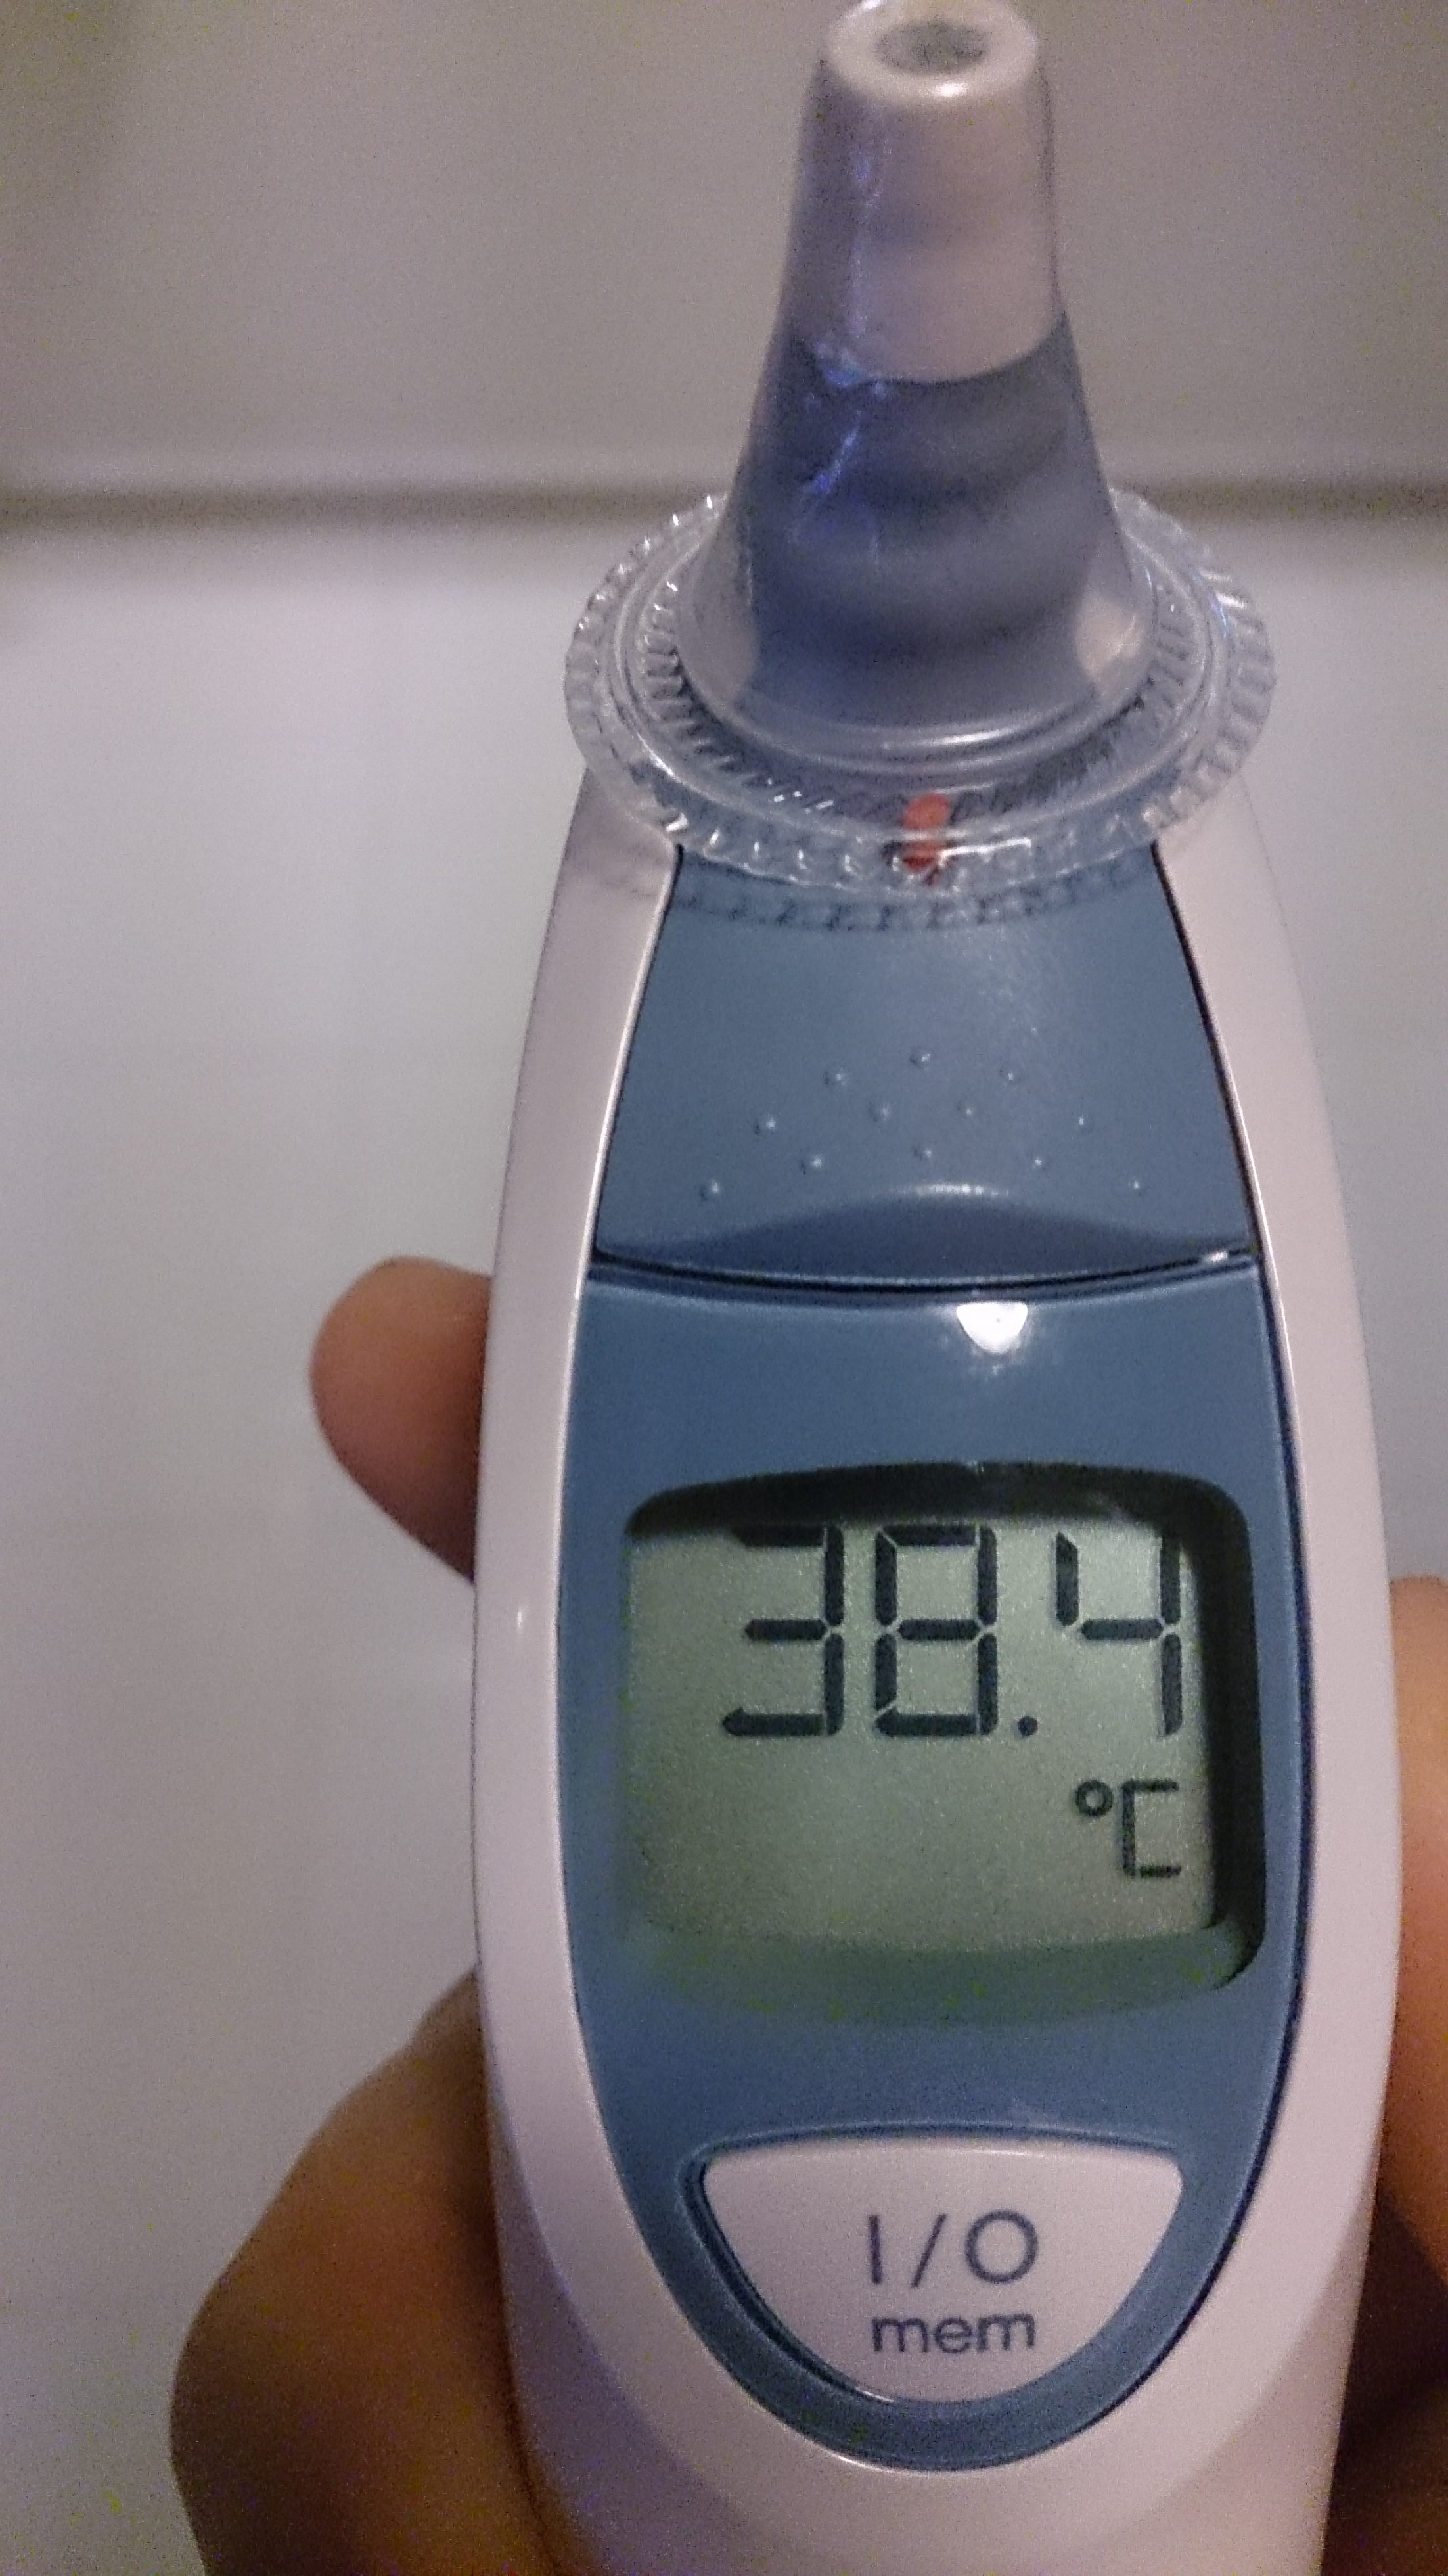 thermometer with fever reading